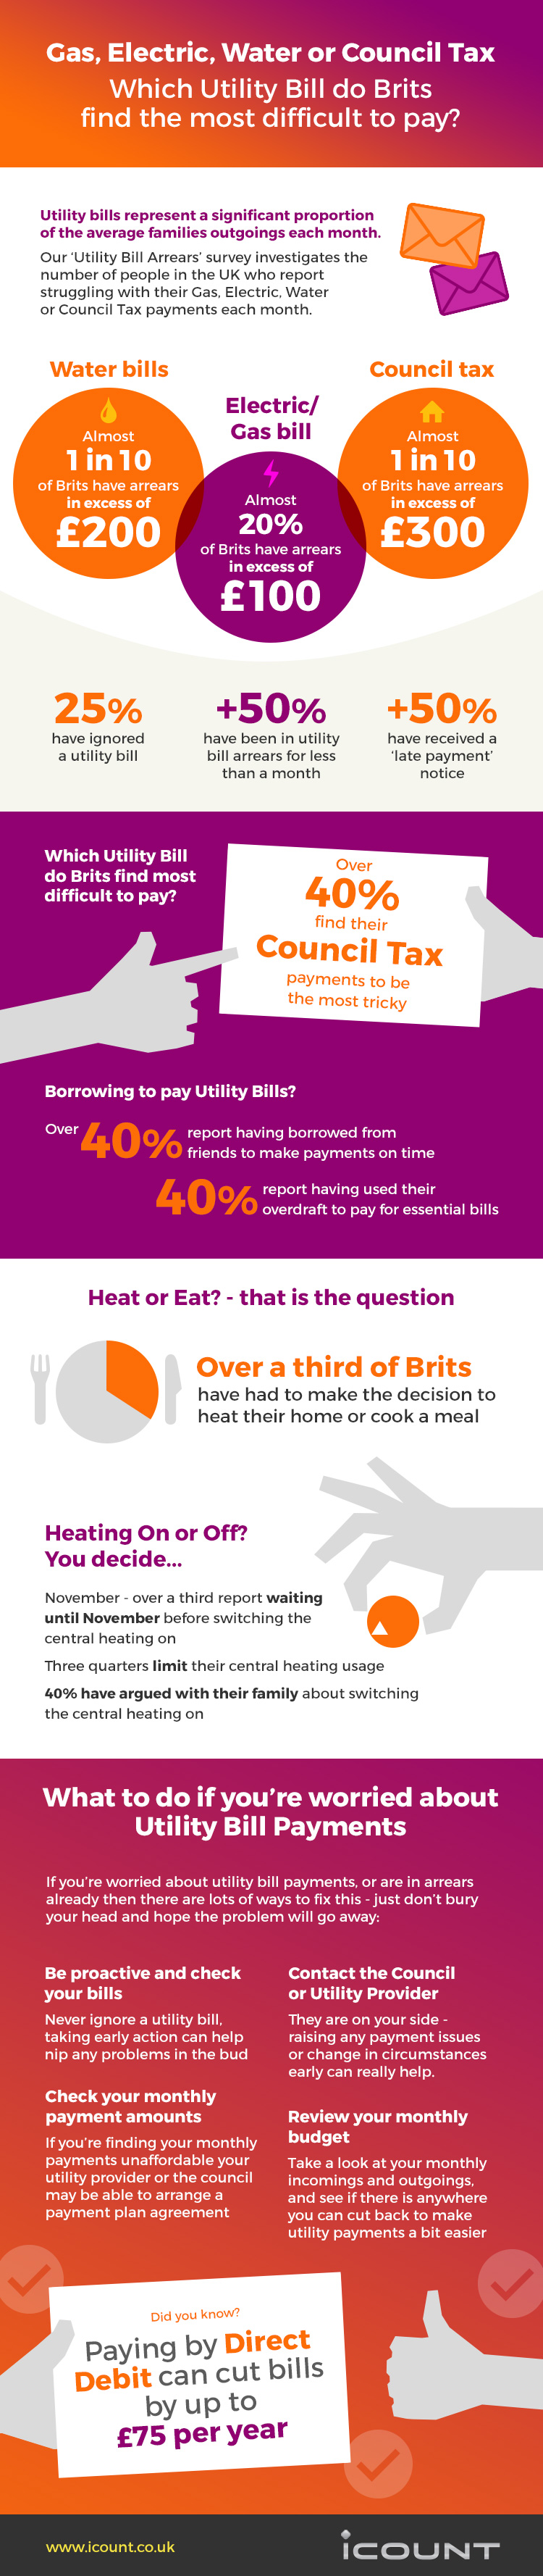 iCount - Which utility bills do Brits find the most difficult to pay infographic